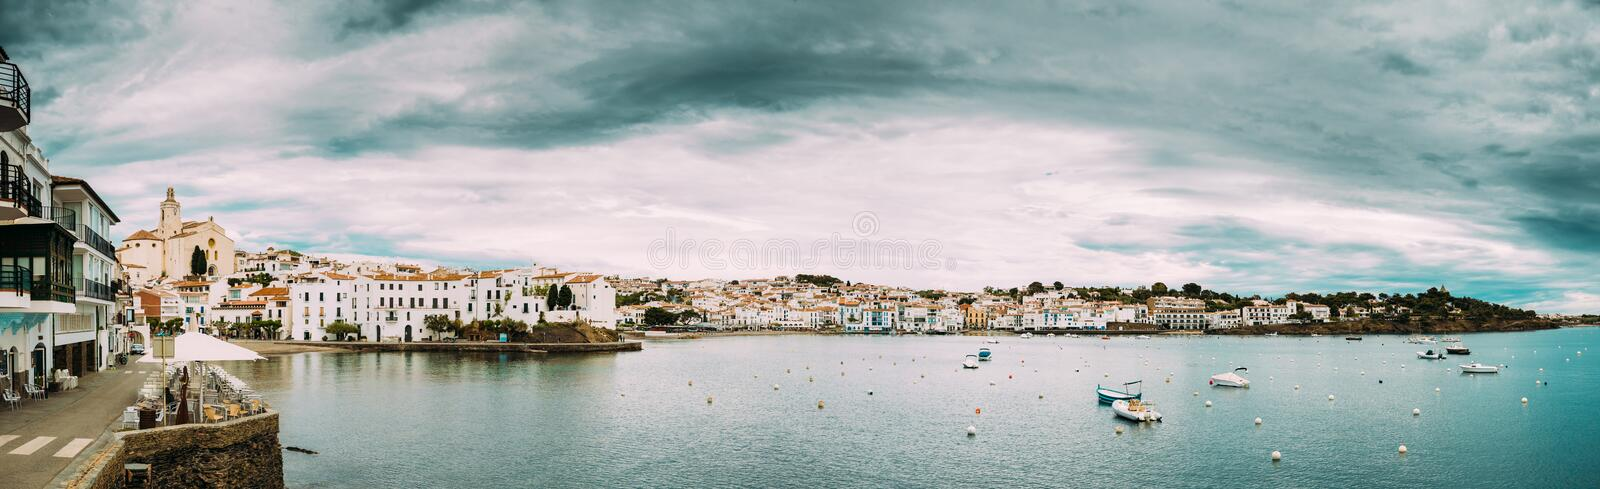 Cadaques, Province Of Girona, Catalonia, Spain. Panoramic View Cityscape royalty free stock image